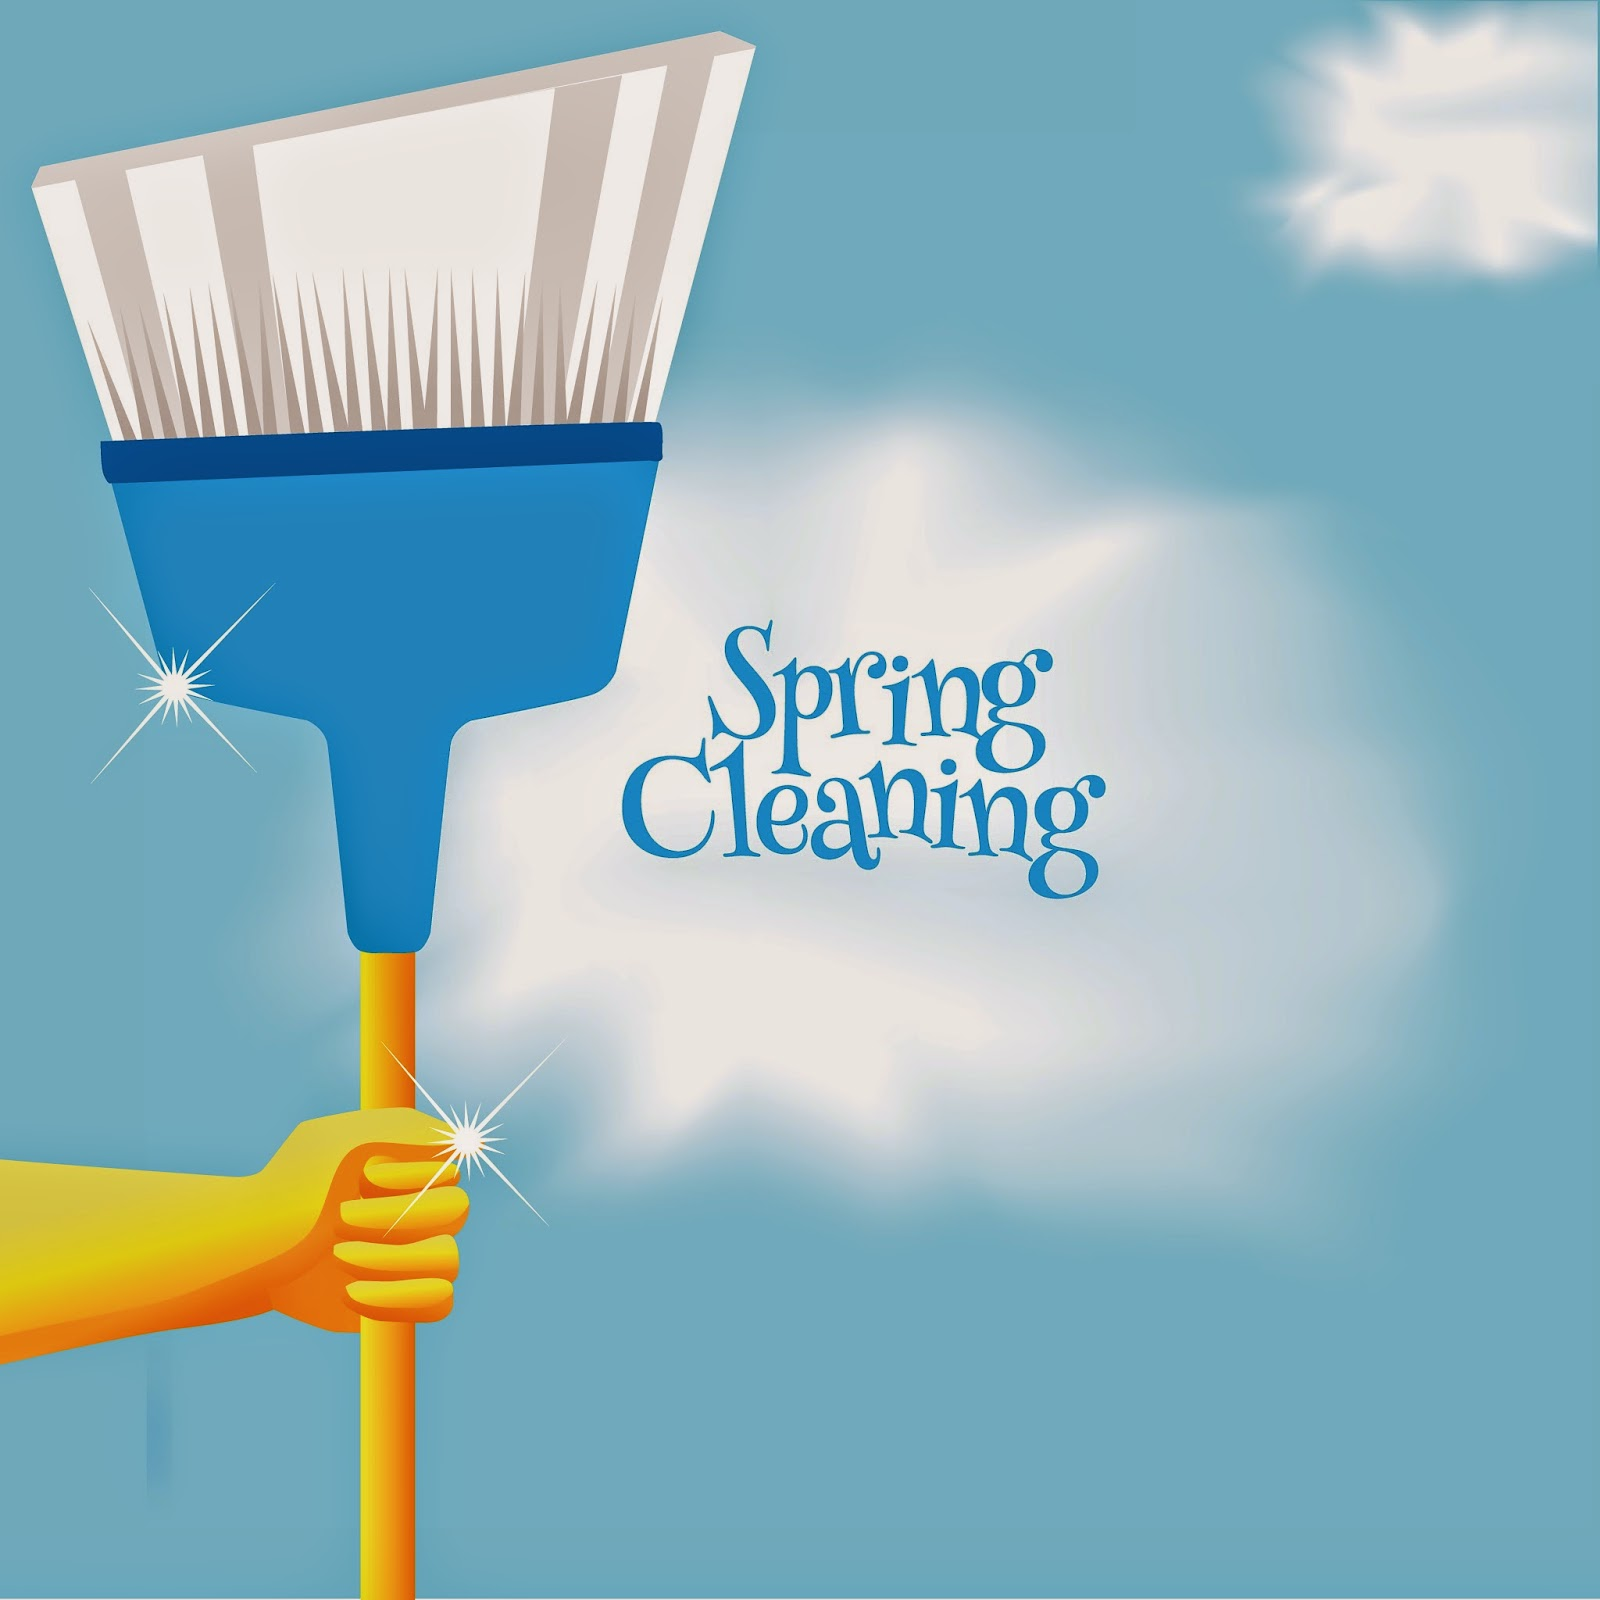 5 Easy Tips To Spring Clean Your Office